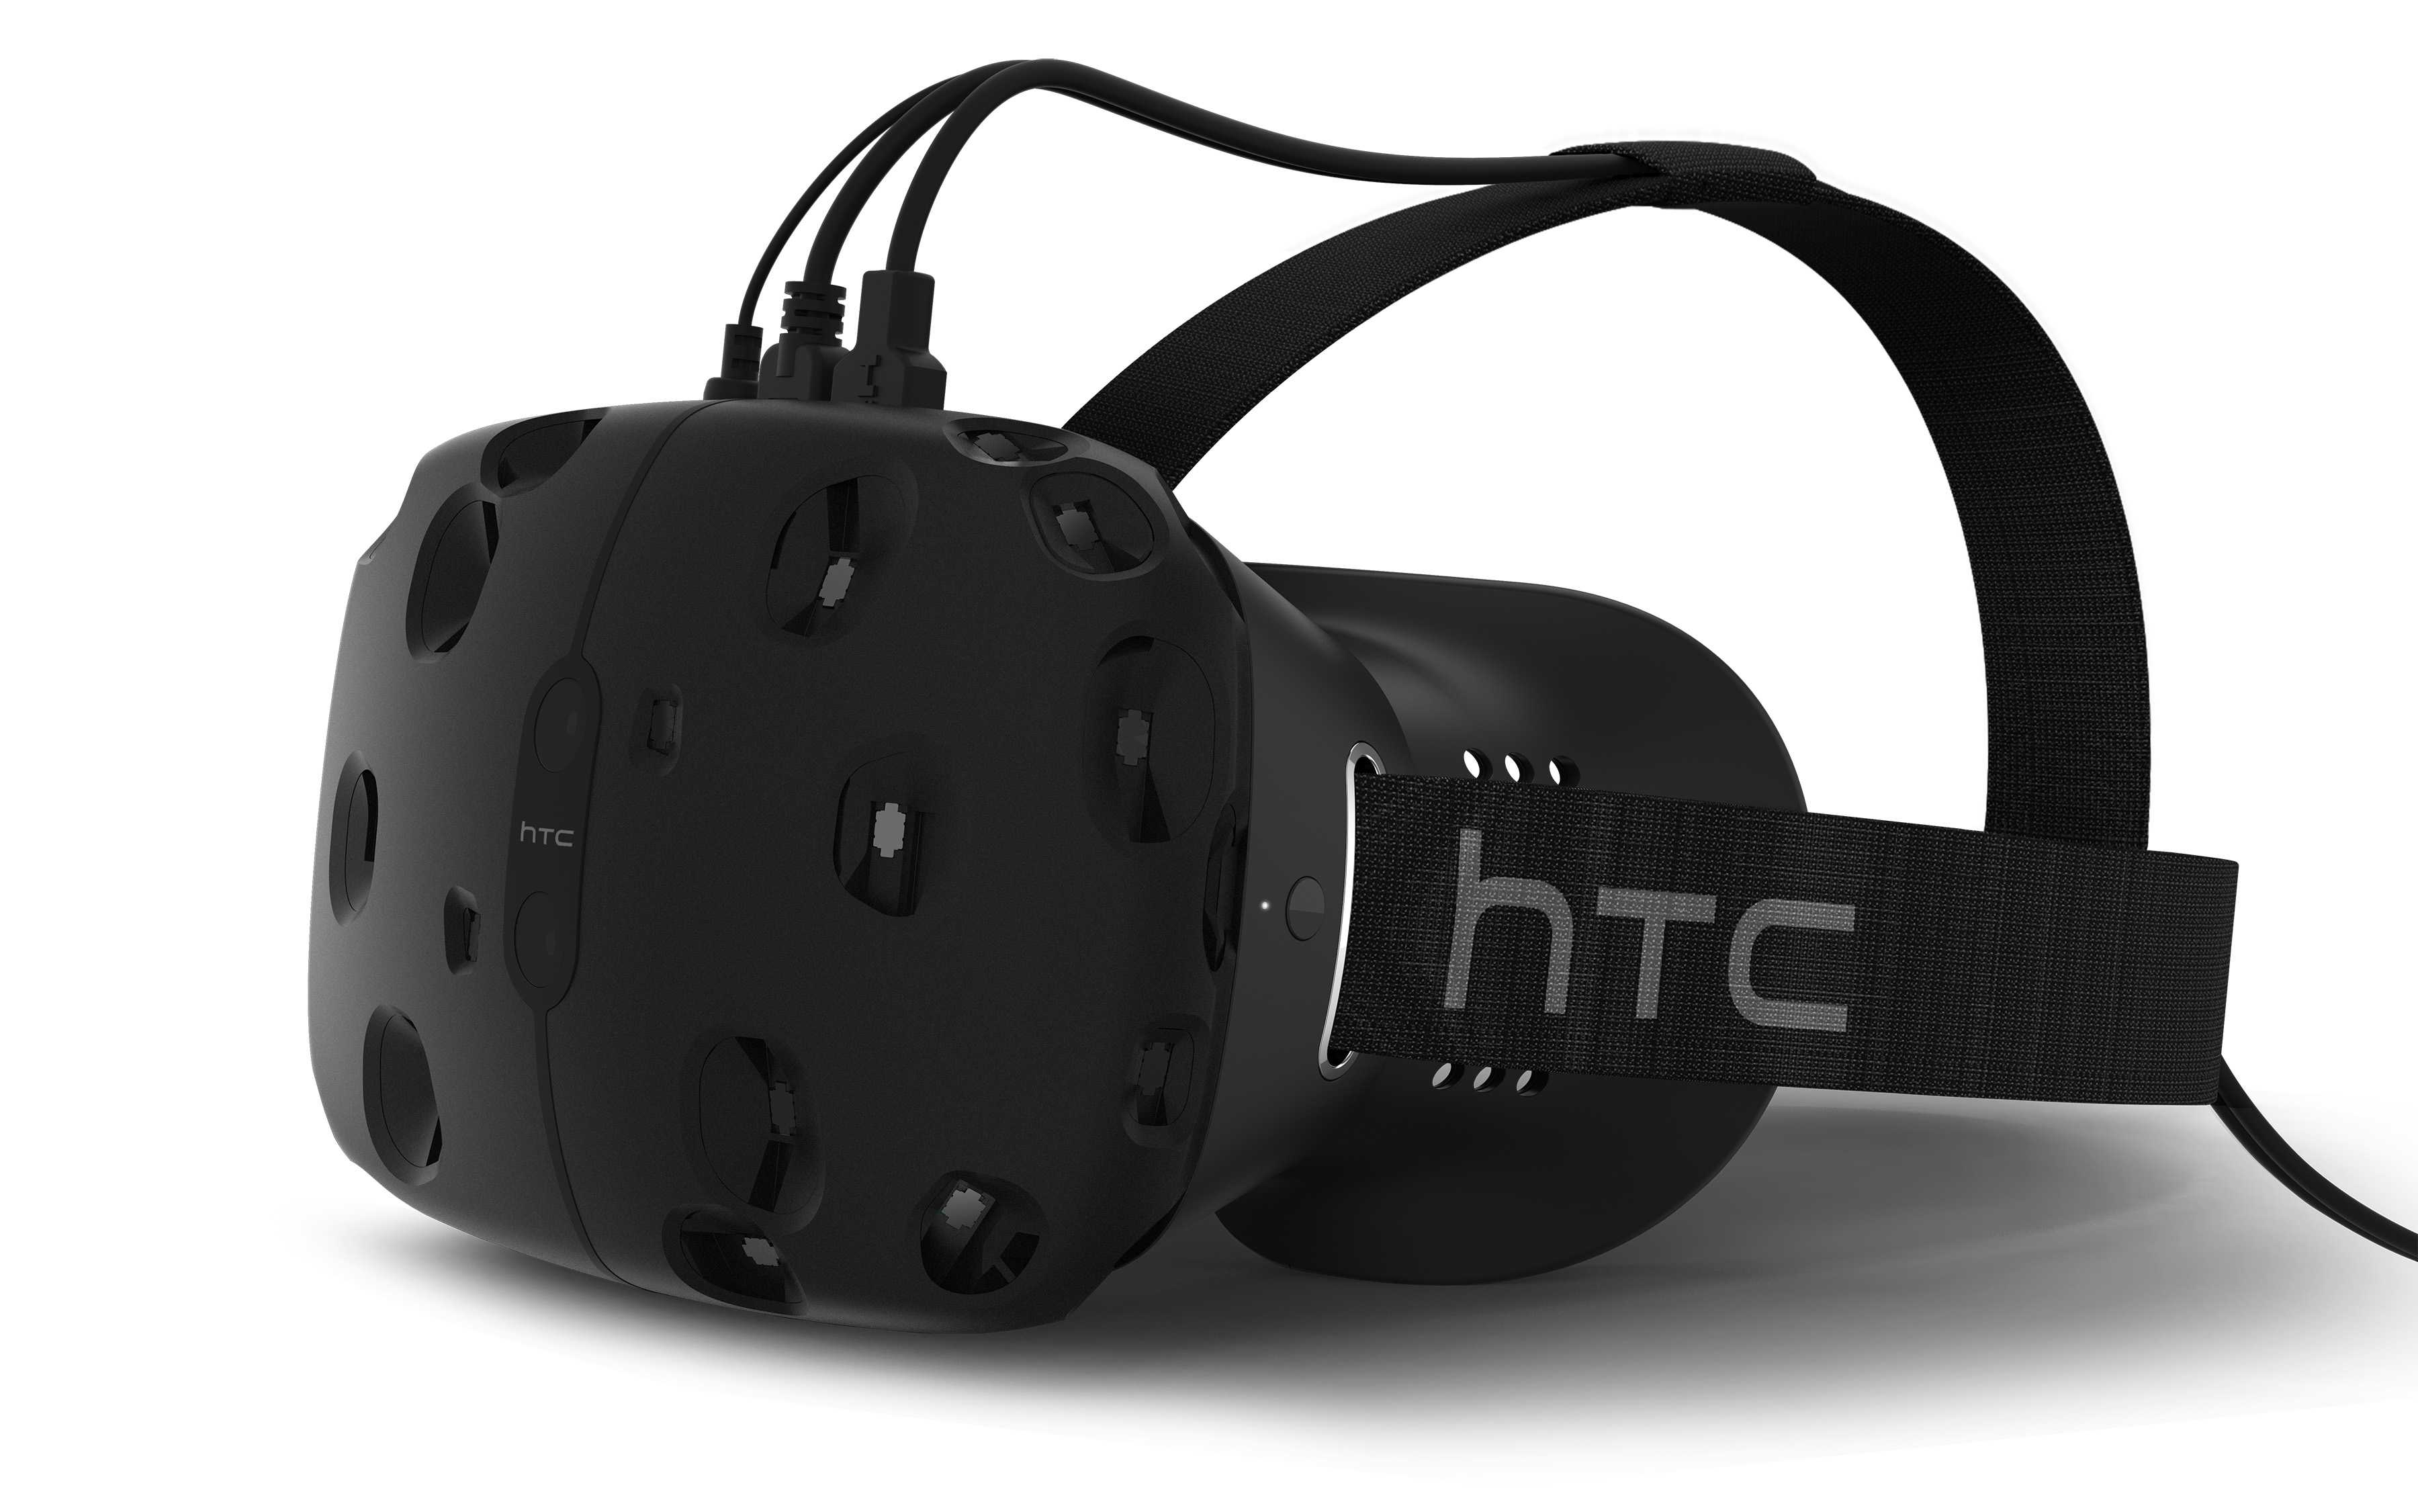 First batch of the HTC Vive is not limited to America